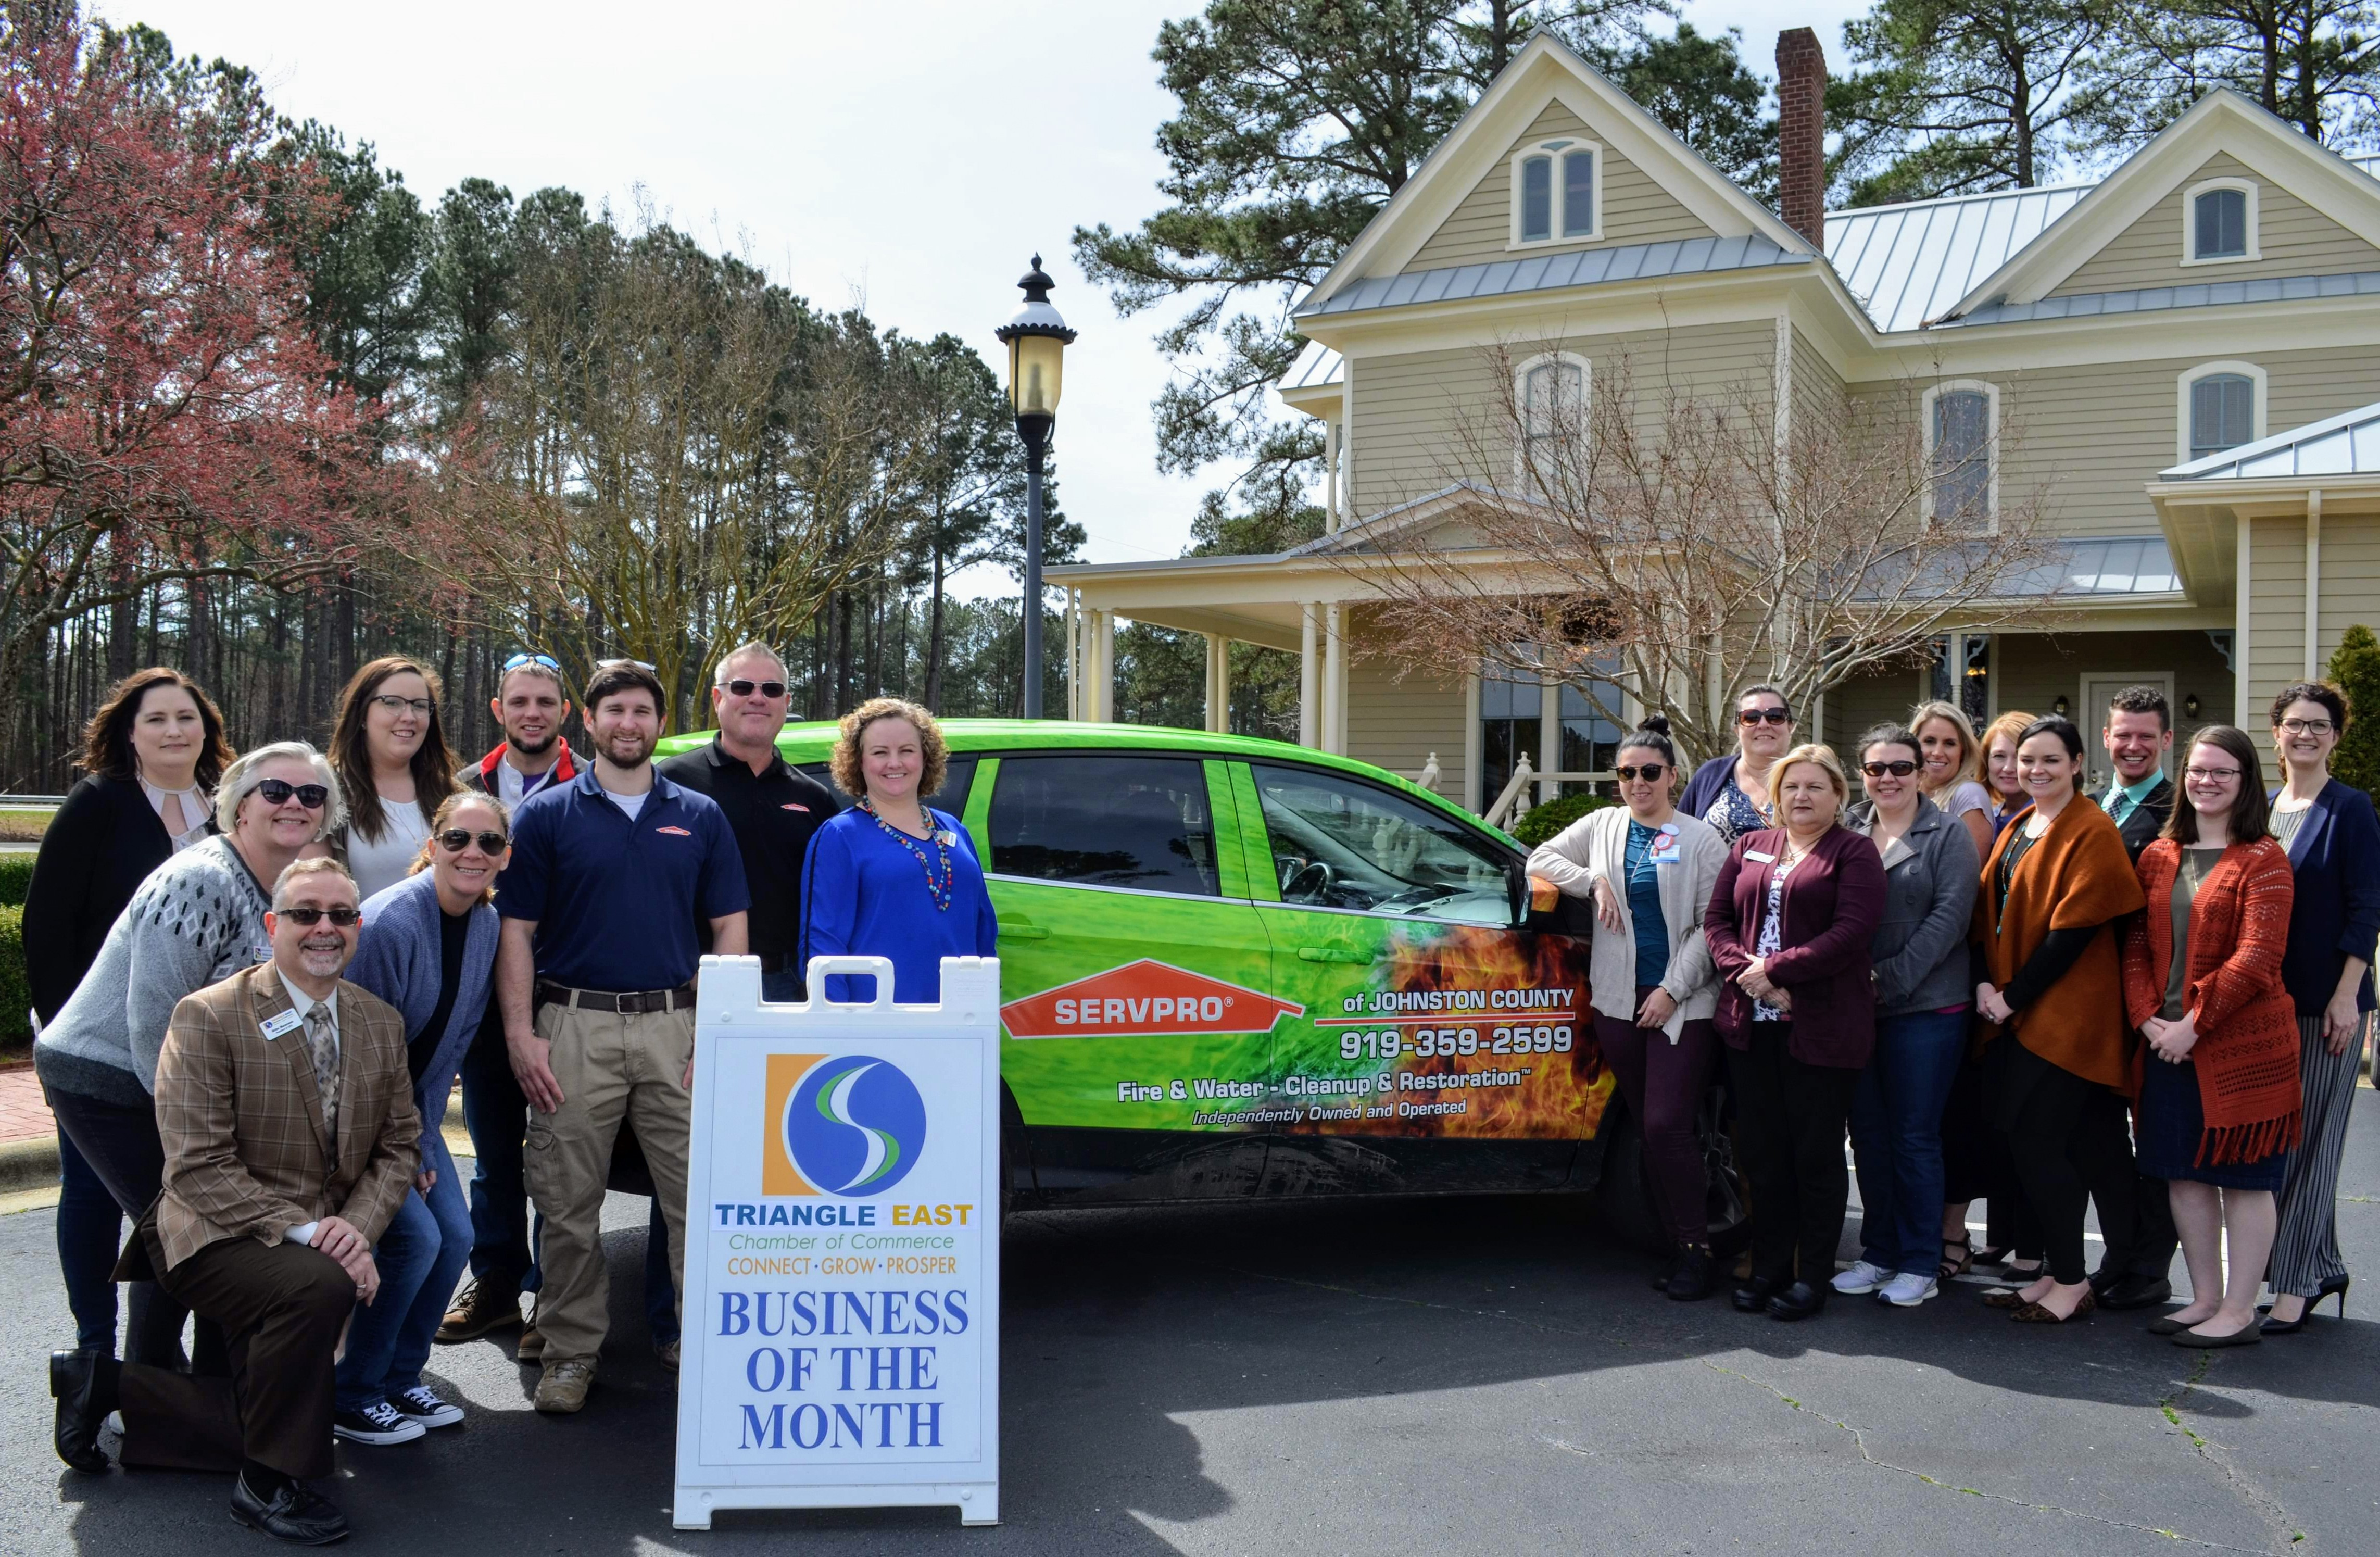 business-of-the-month-servpro.JPG